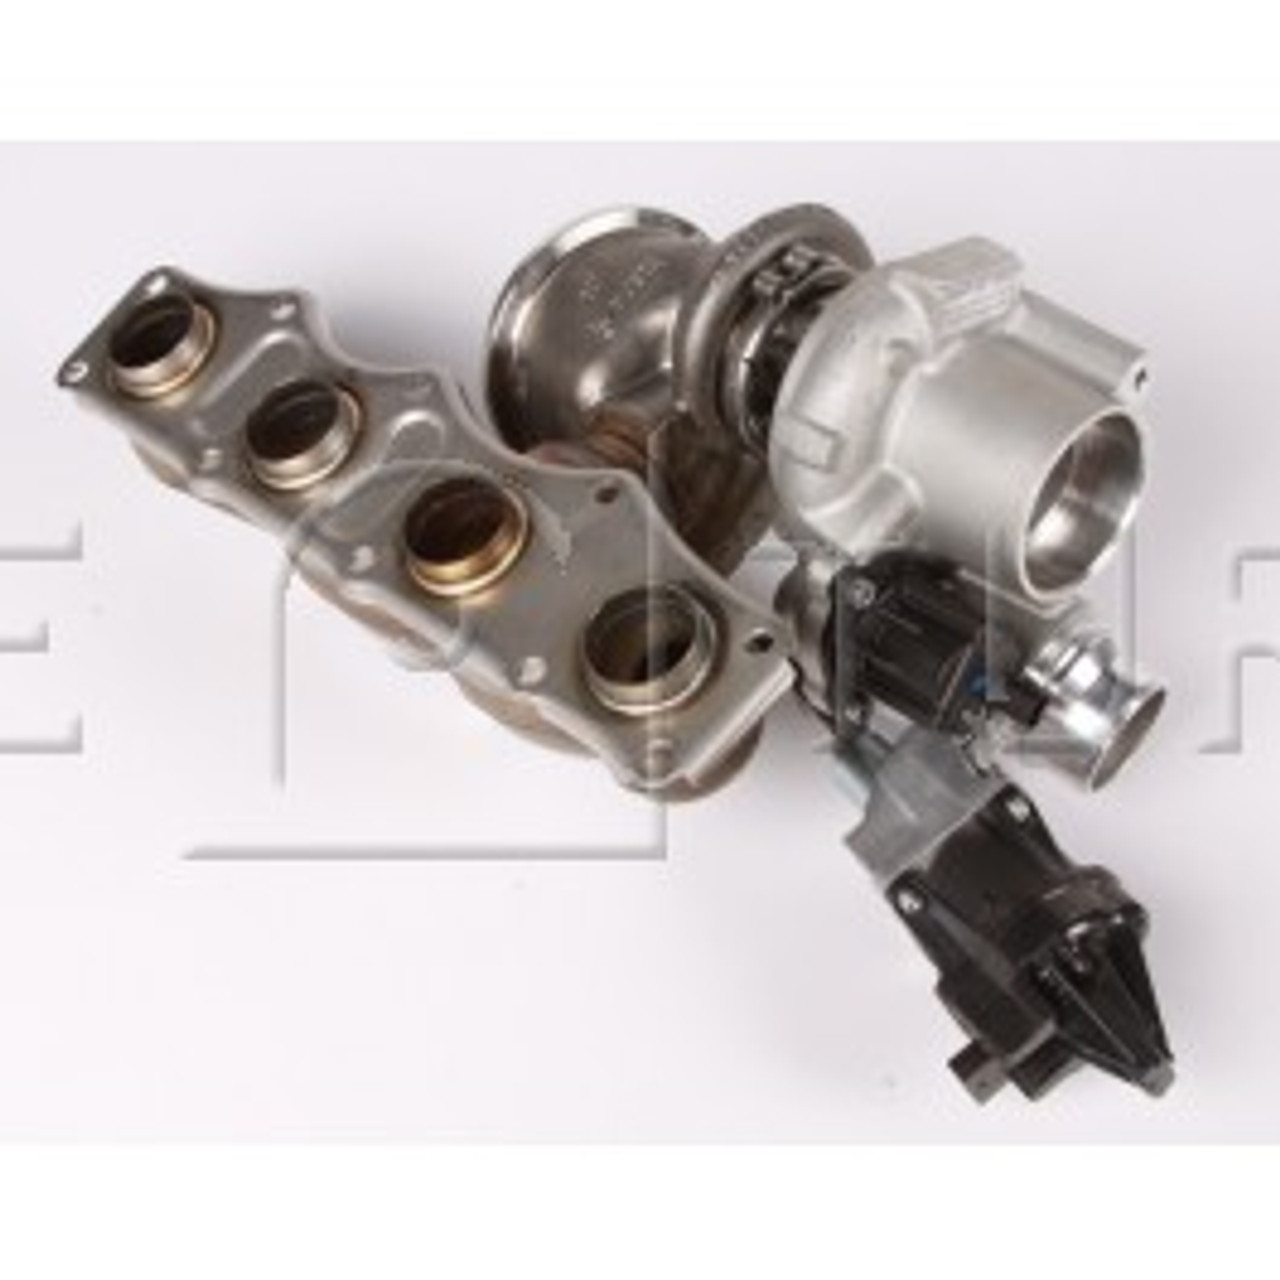 Pure Turbos BMW N20 / N26 Stage 2 Turbo Upgrade Kit